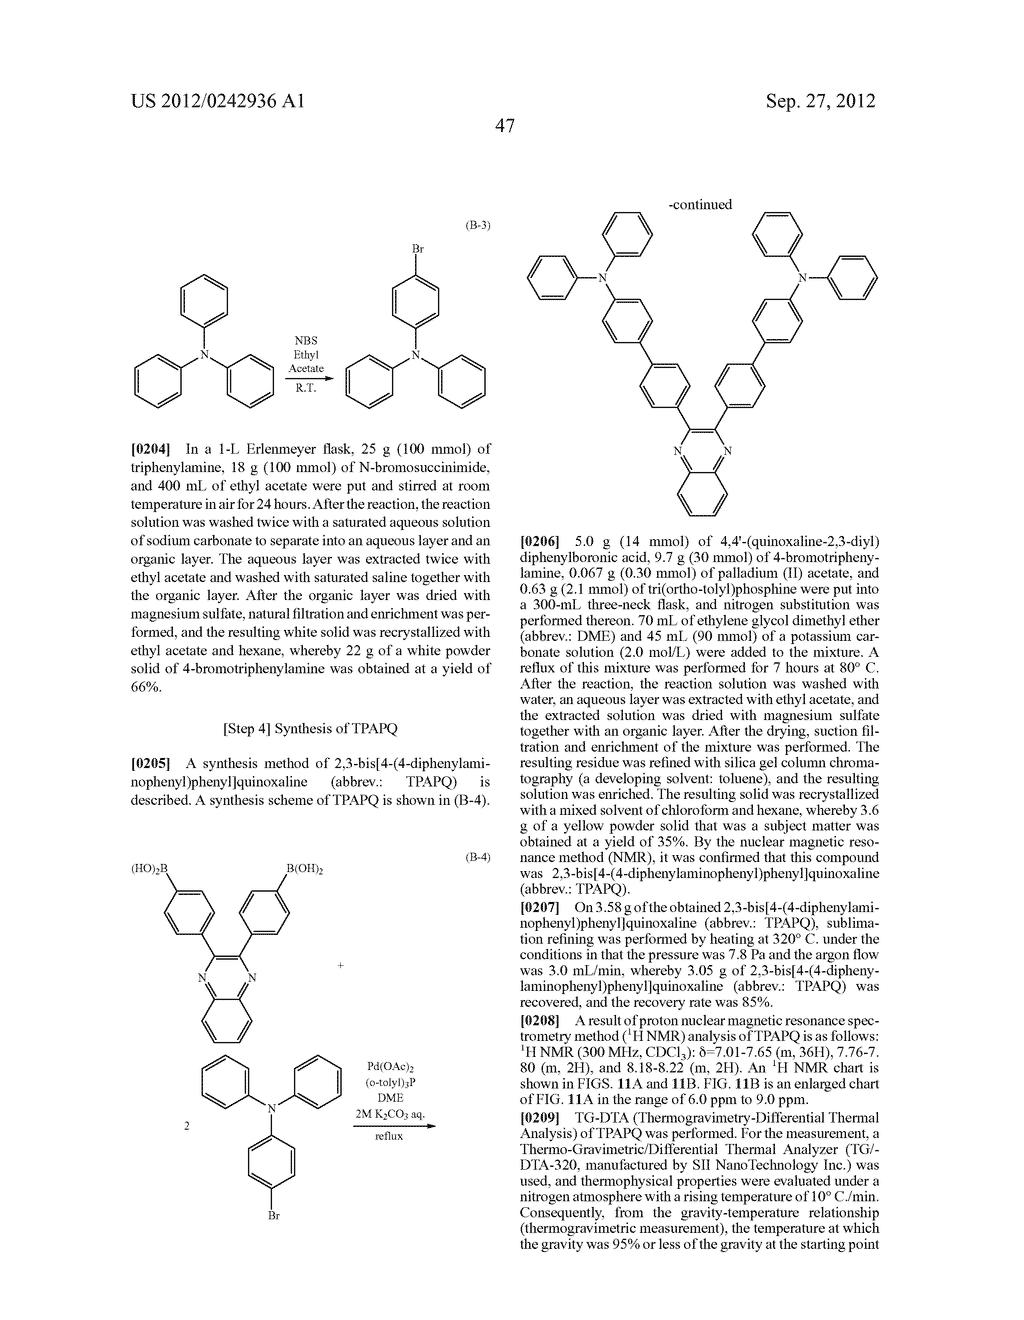 Quinoxaline Derivative, and Light Emitting Element, Light Emitting Device,     and Electronic Device Using the Quinoxaline Derivative - diagram, schematic, and image 83